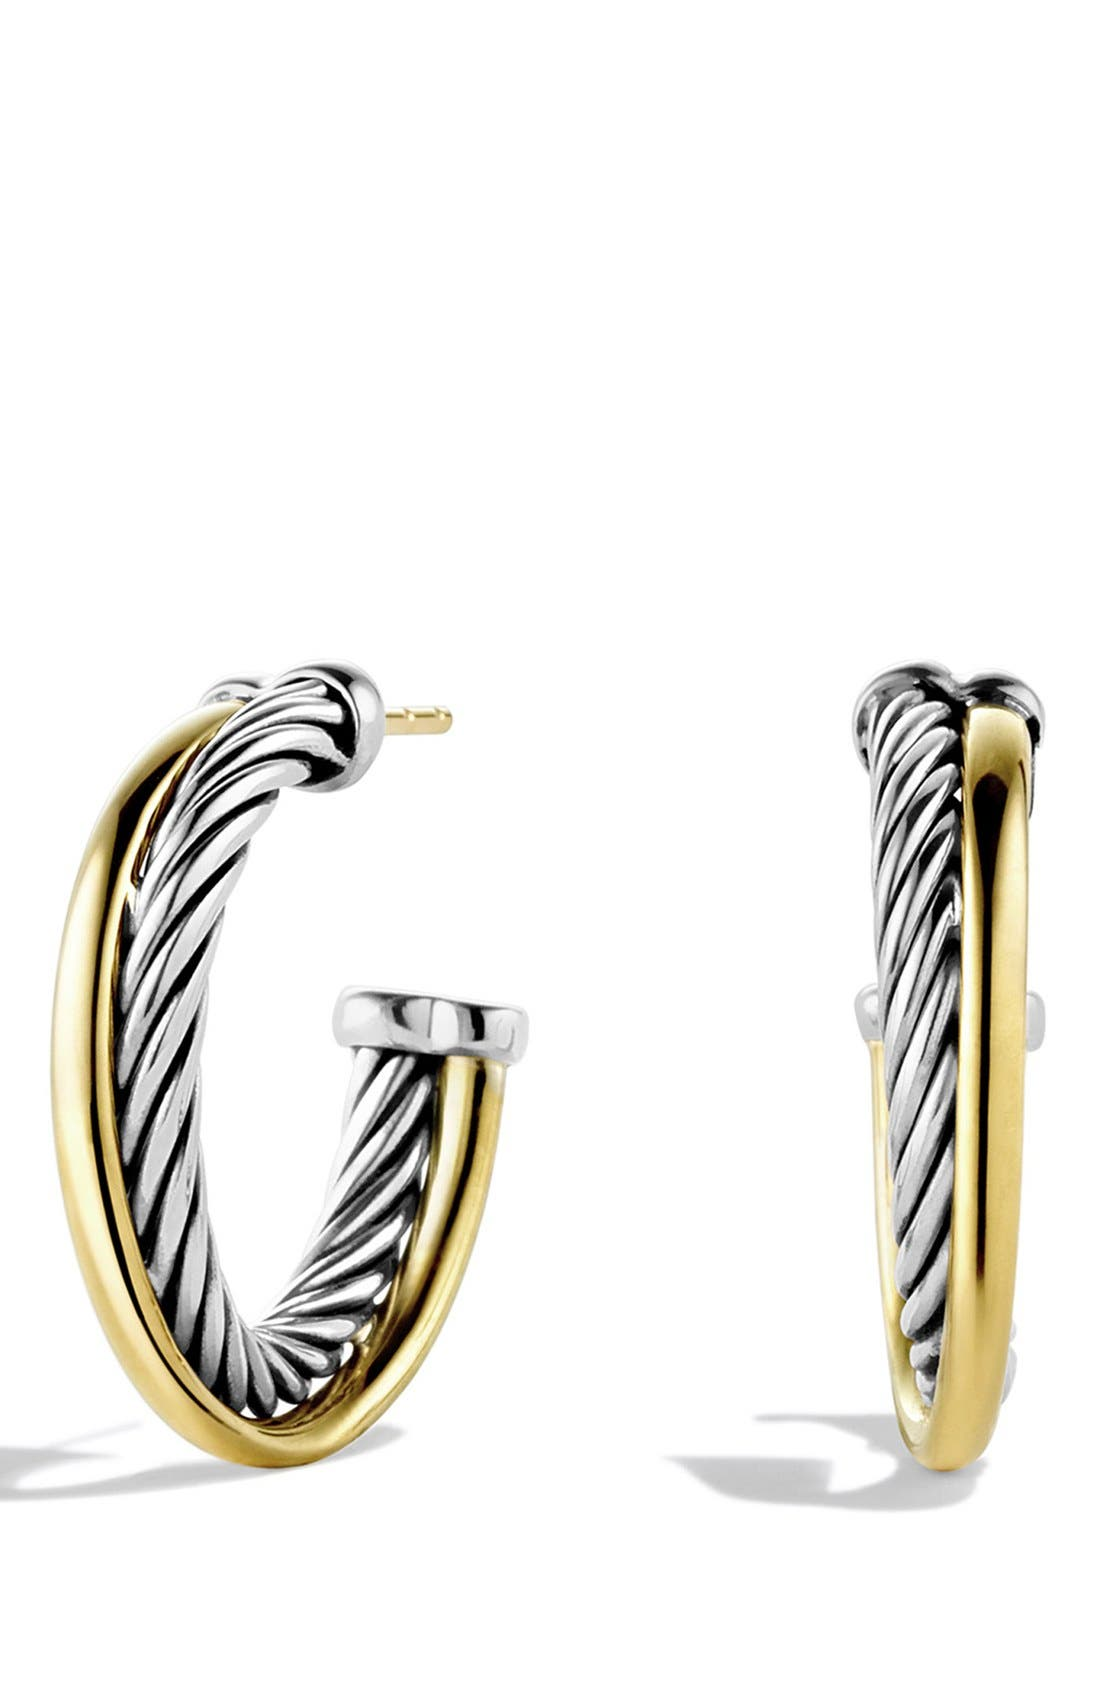 'Crossover' Small Hoop Earrings with Gold,                             Main thumbnail 1, color,                             Two Tone